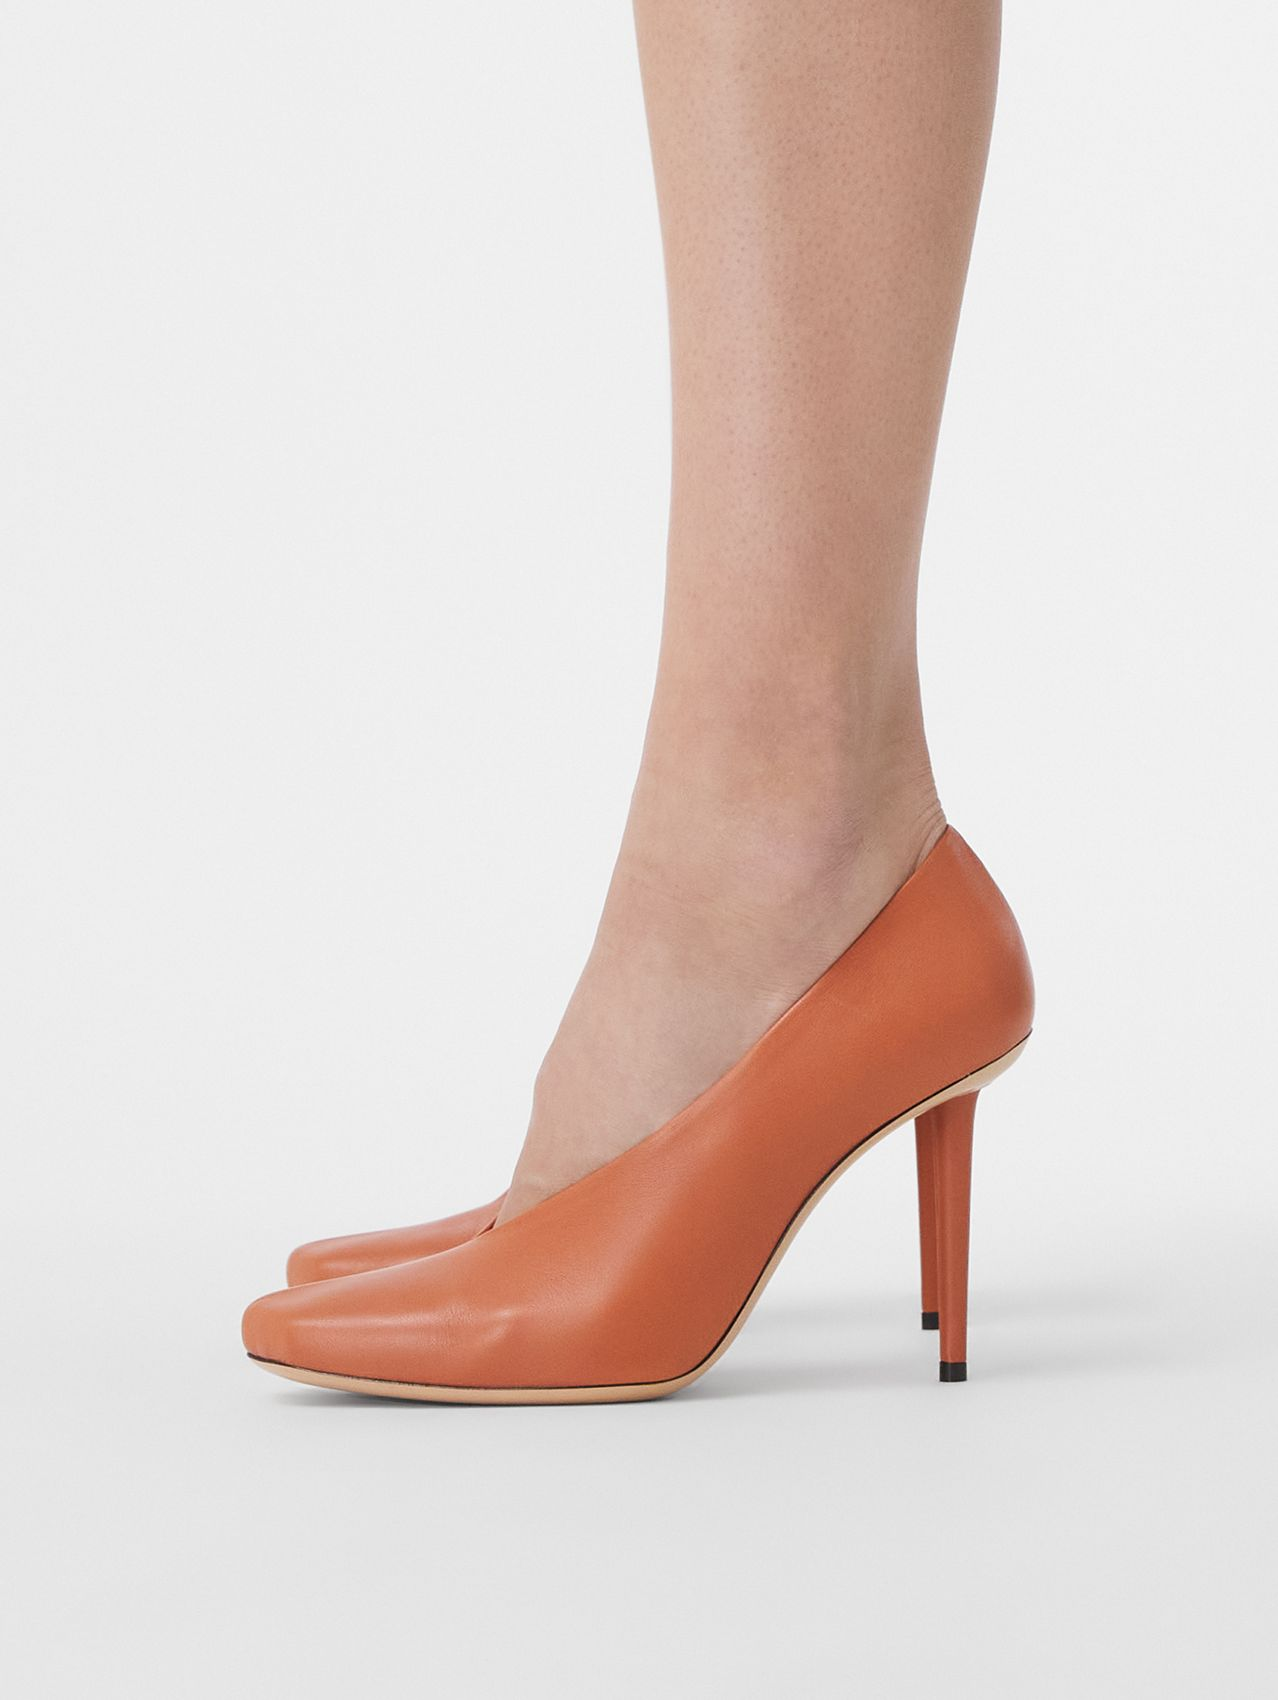 Lambskin Sculptural Pumps in Dark Amber